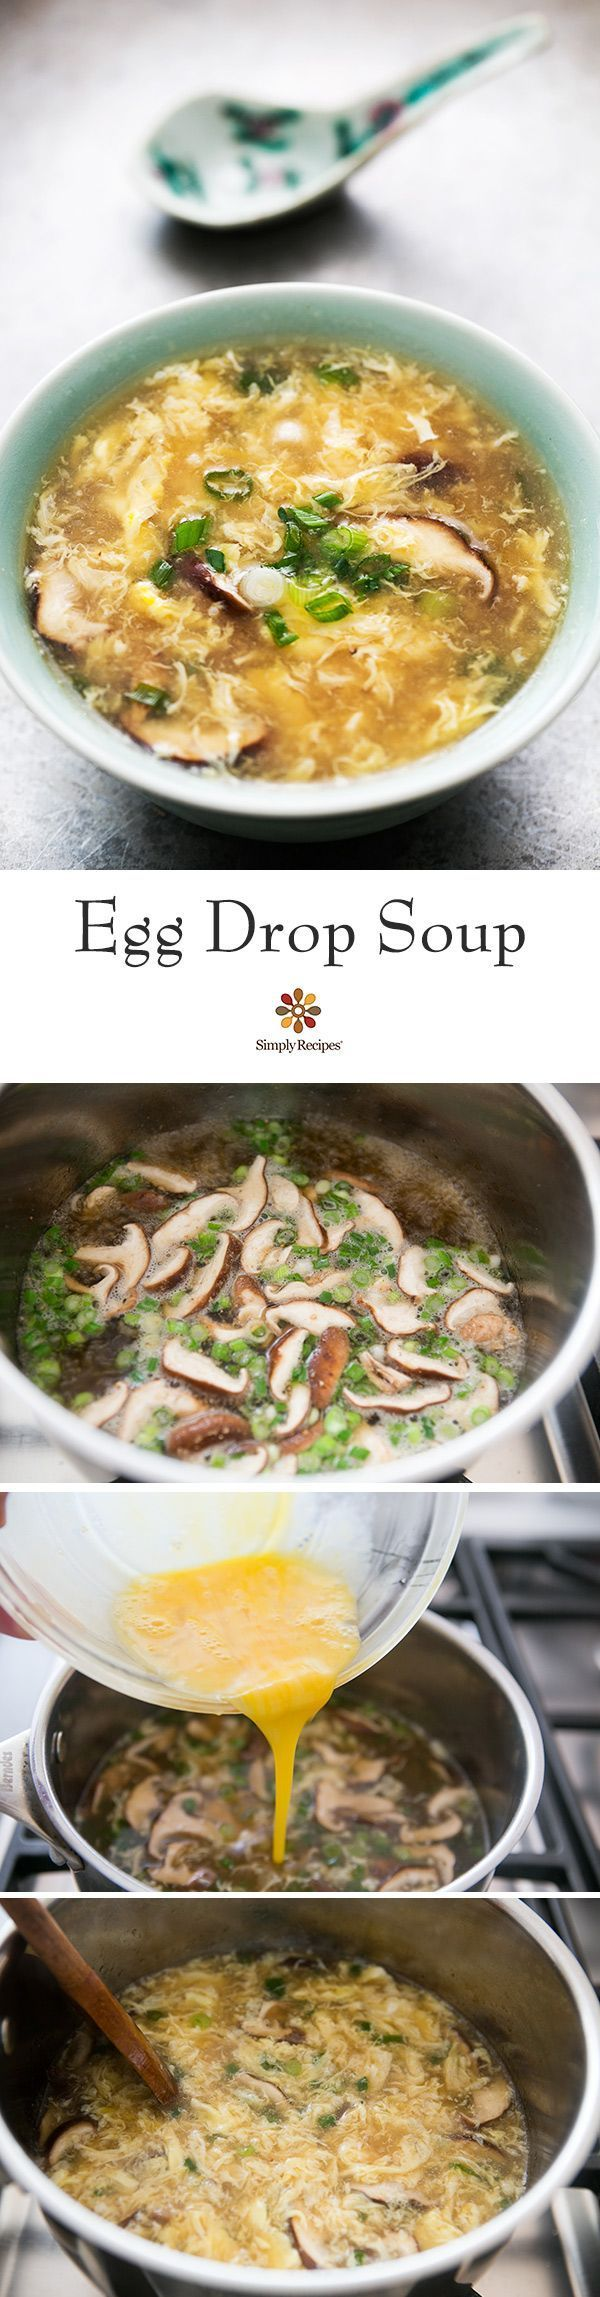 Easy! This classic Chinese egg drop soup comes together in minutes, with just a few simple ingredients—stock, soy sauce, eggs, ginger, green onions, mushrooms. #glutenfree #lowcarb On http://SimplyRecipes.com